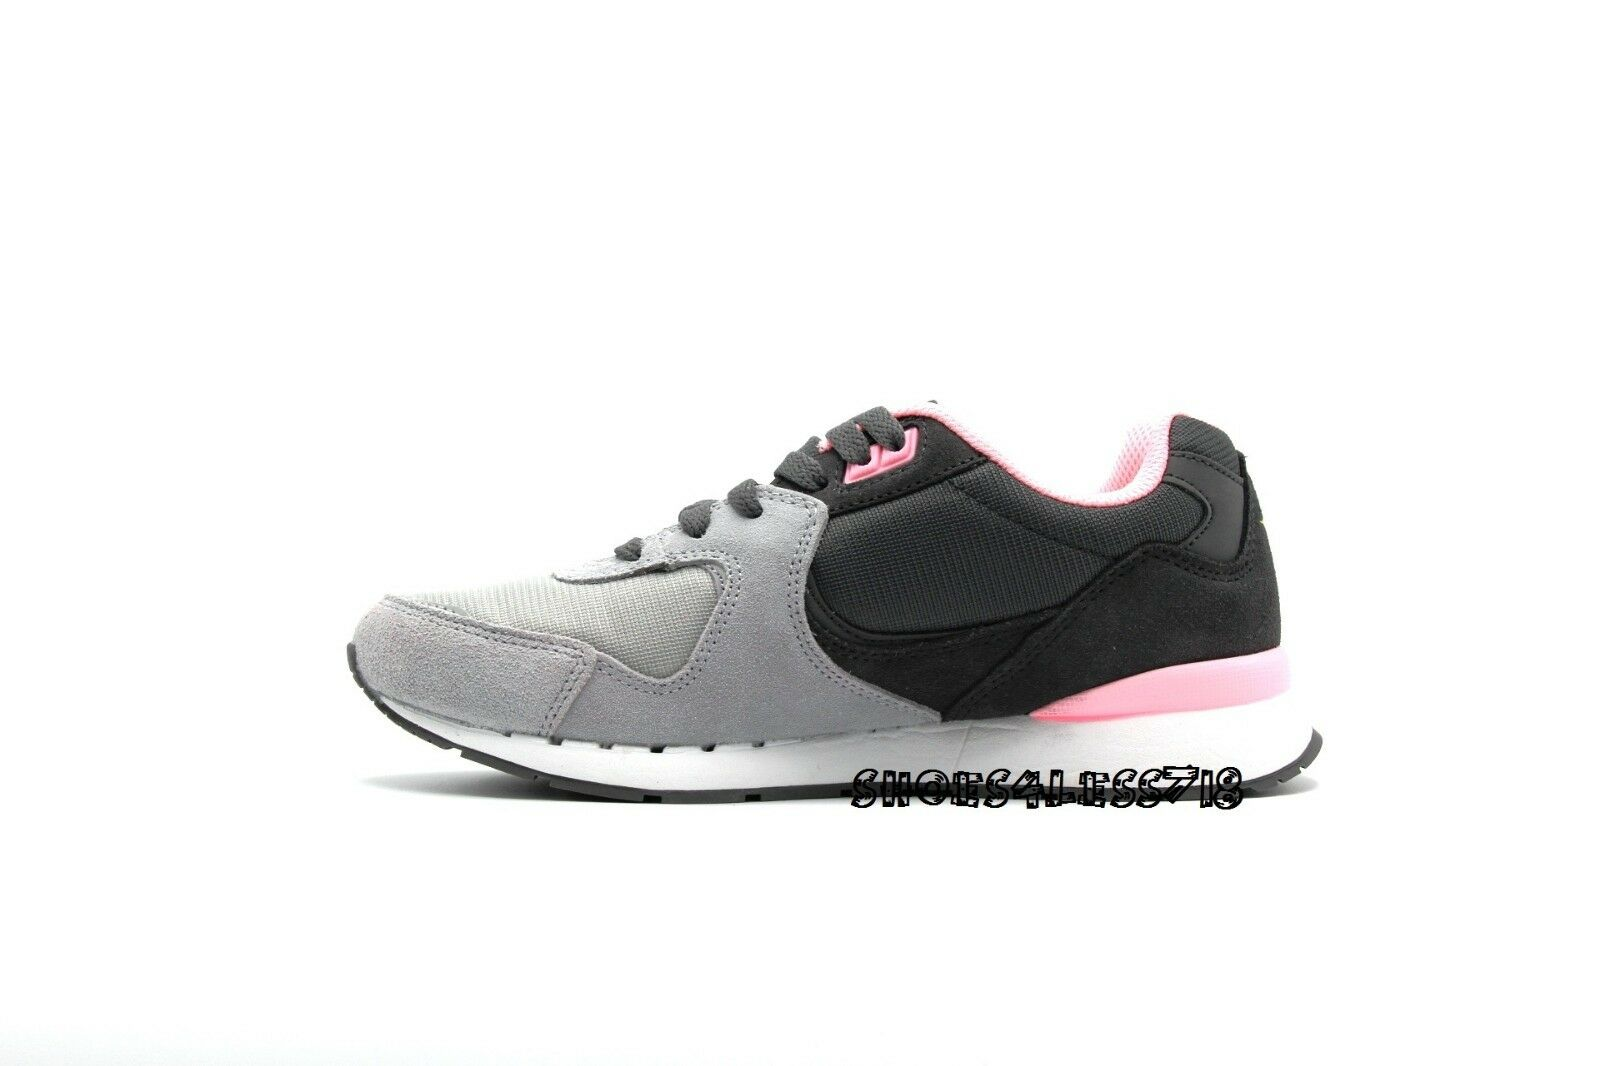 buy popular 50531 77796 ... NEW donna KANGAROOS ROOS 2 grigio bianca rosa rosa rosa SUEDE LACE UP  RUNNING scarpe da ...